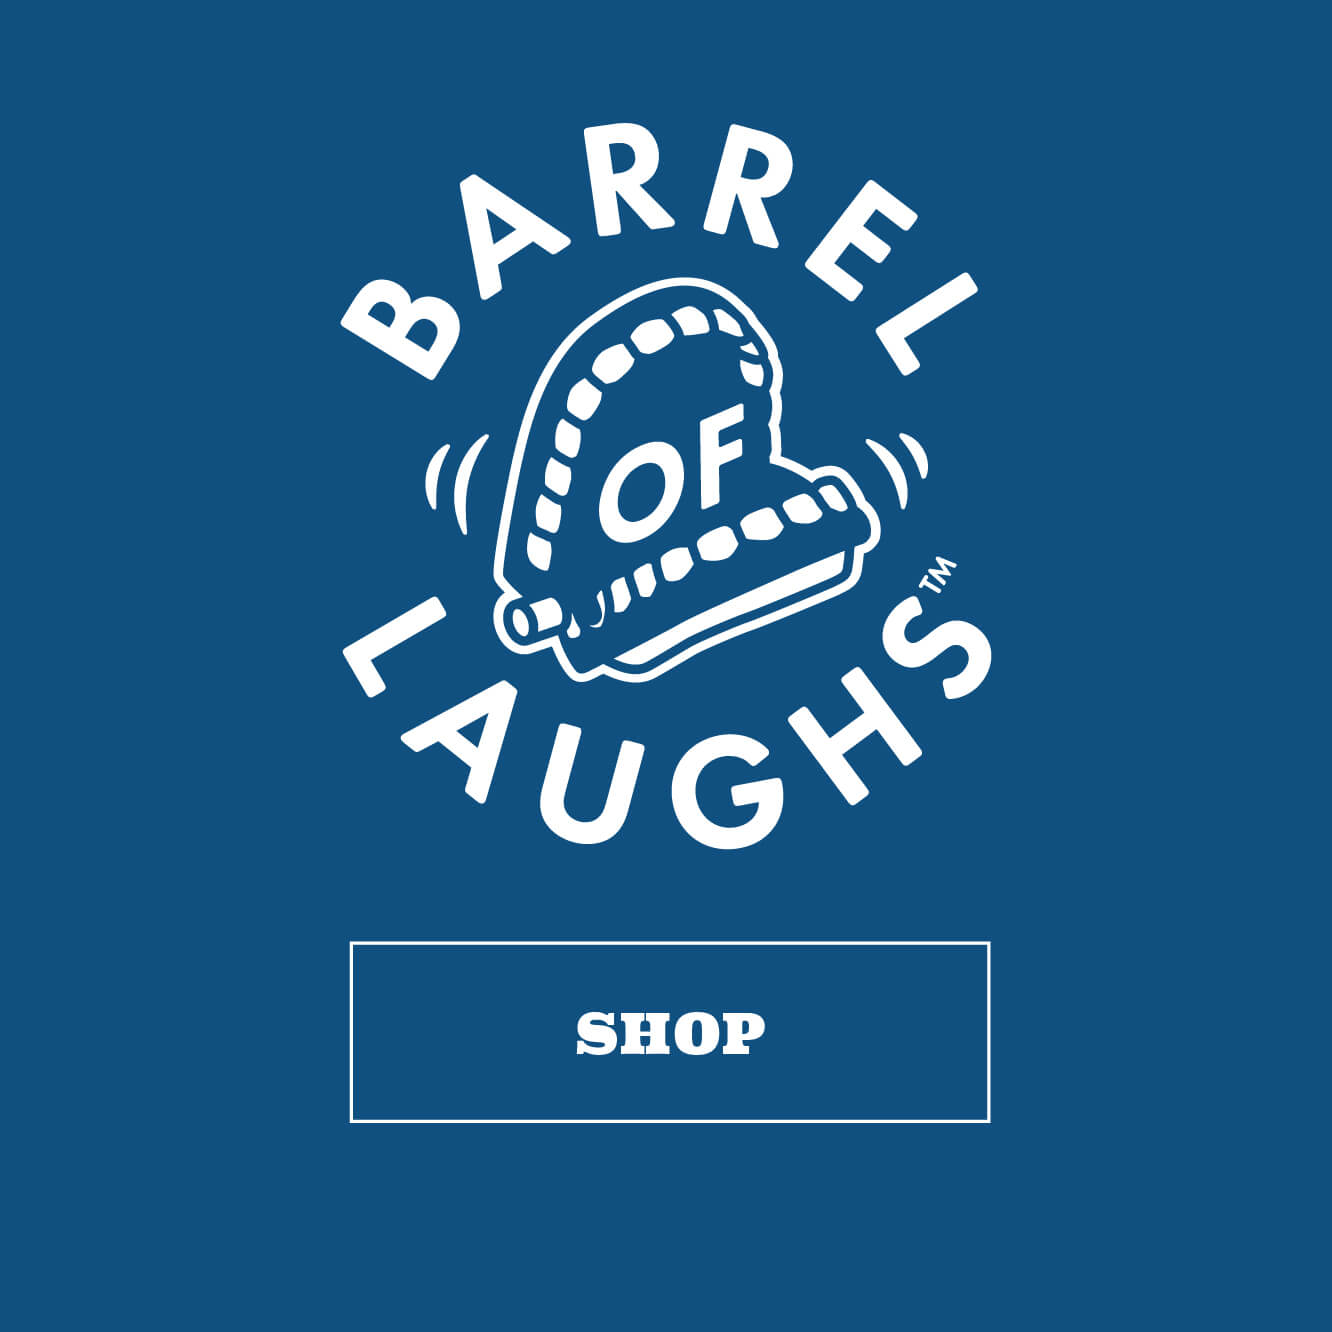 Shop Ridley's Barrel of Laughs